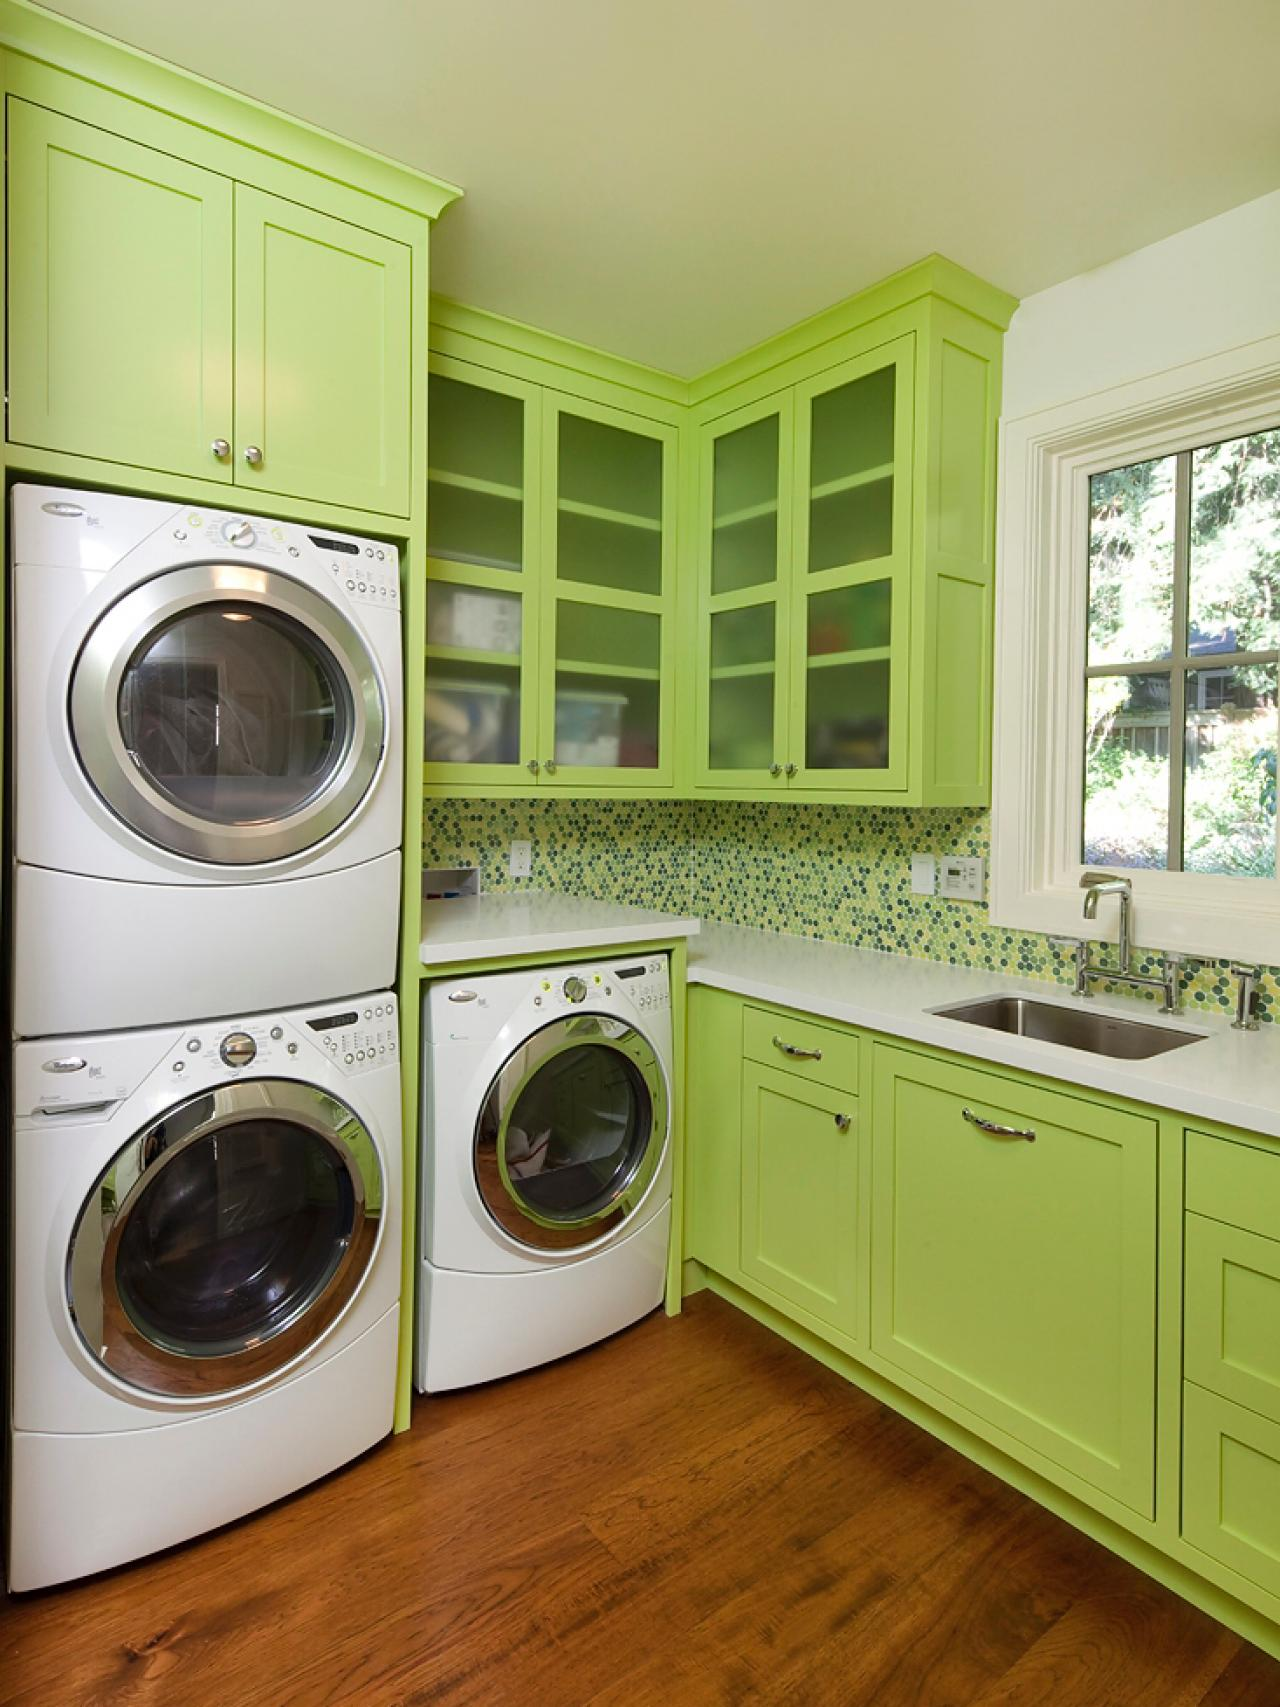 10 chic laundry room decorating ideas interior design - Laundry room design ideas ...